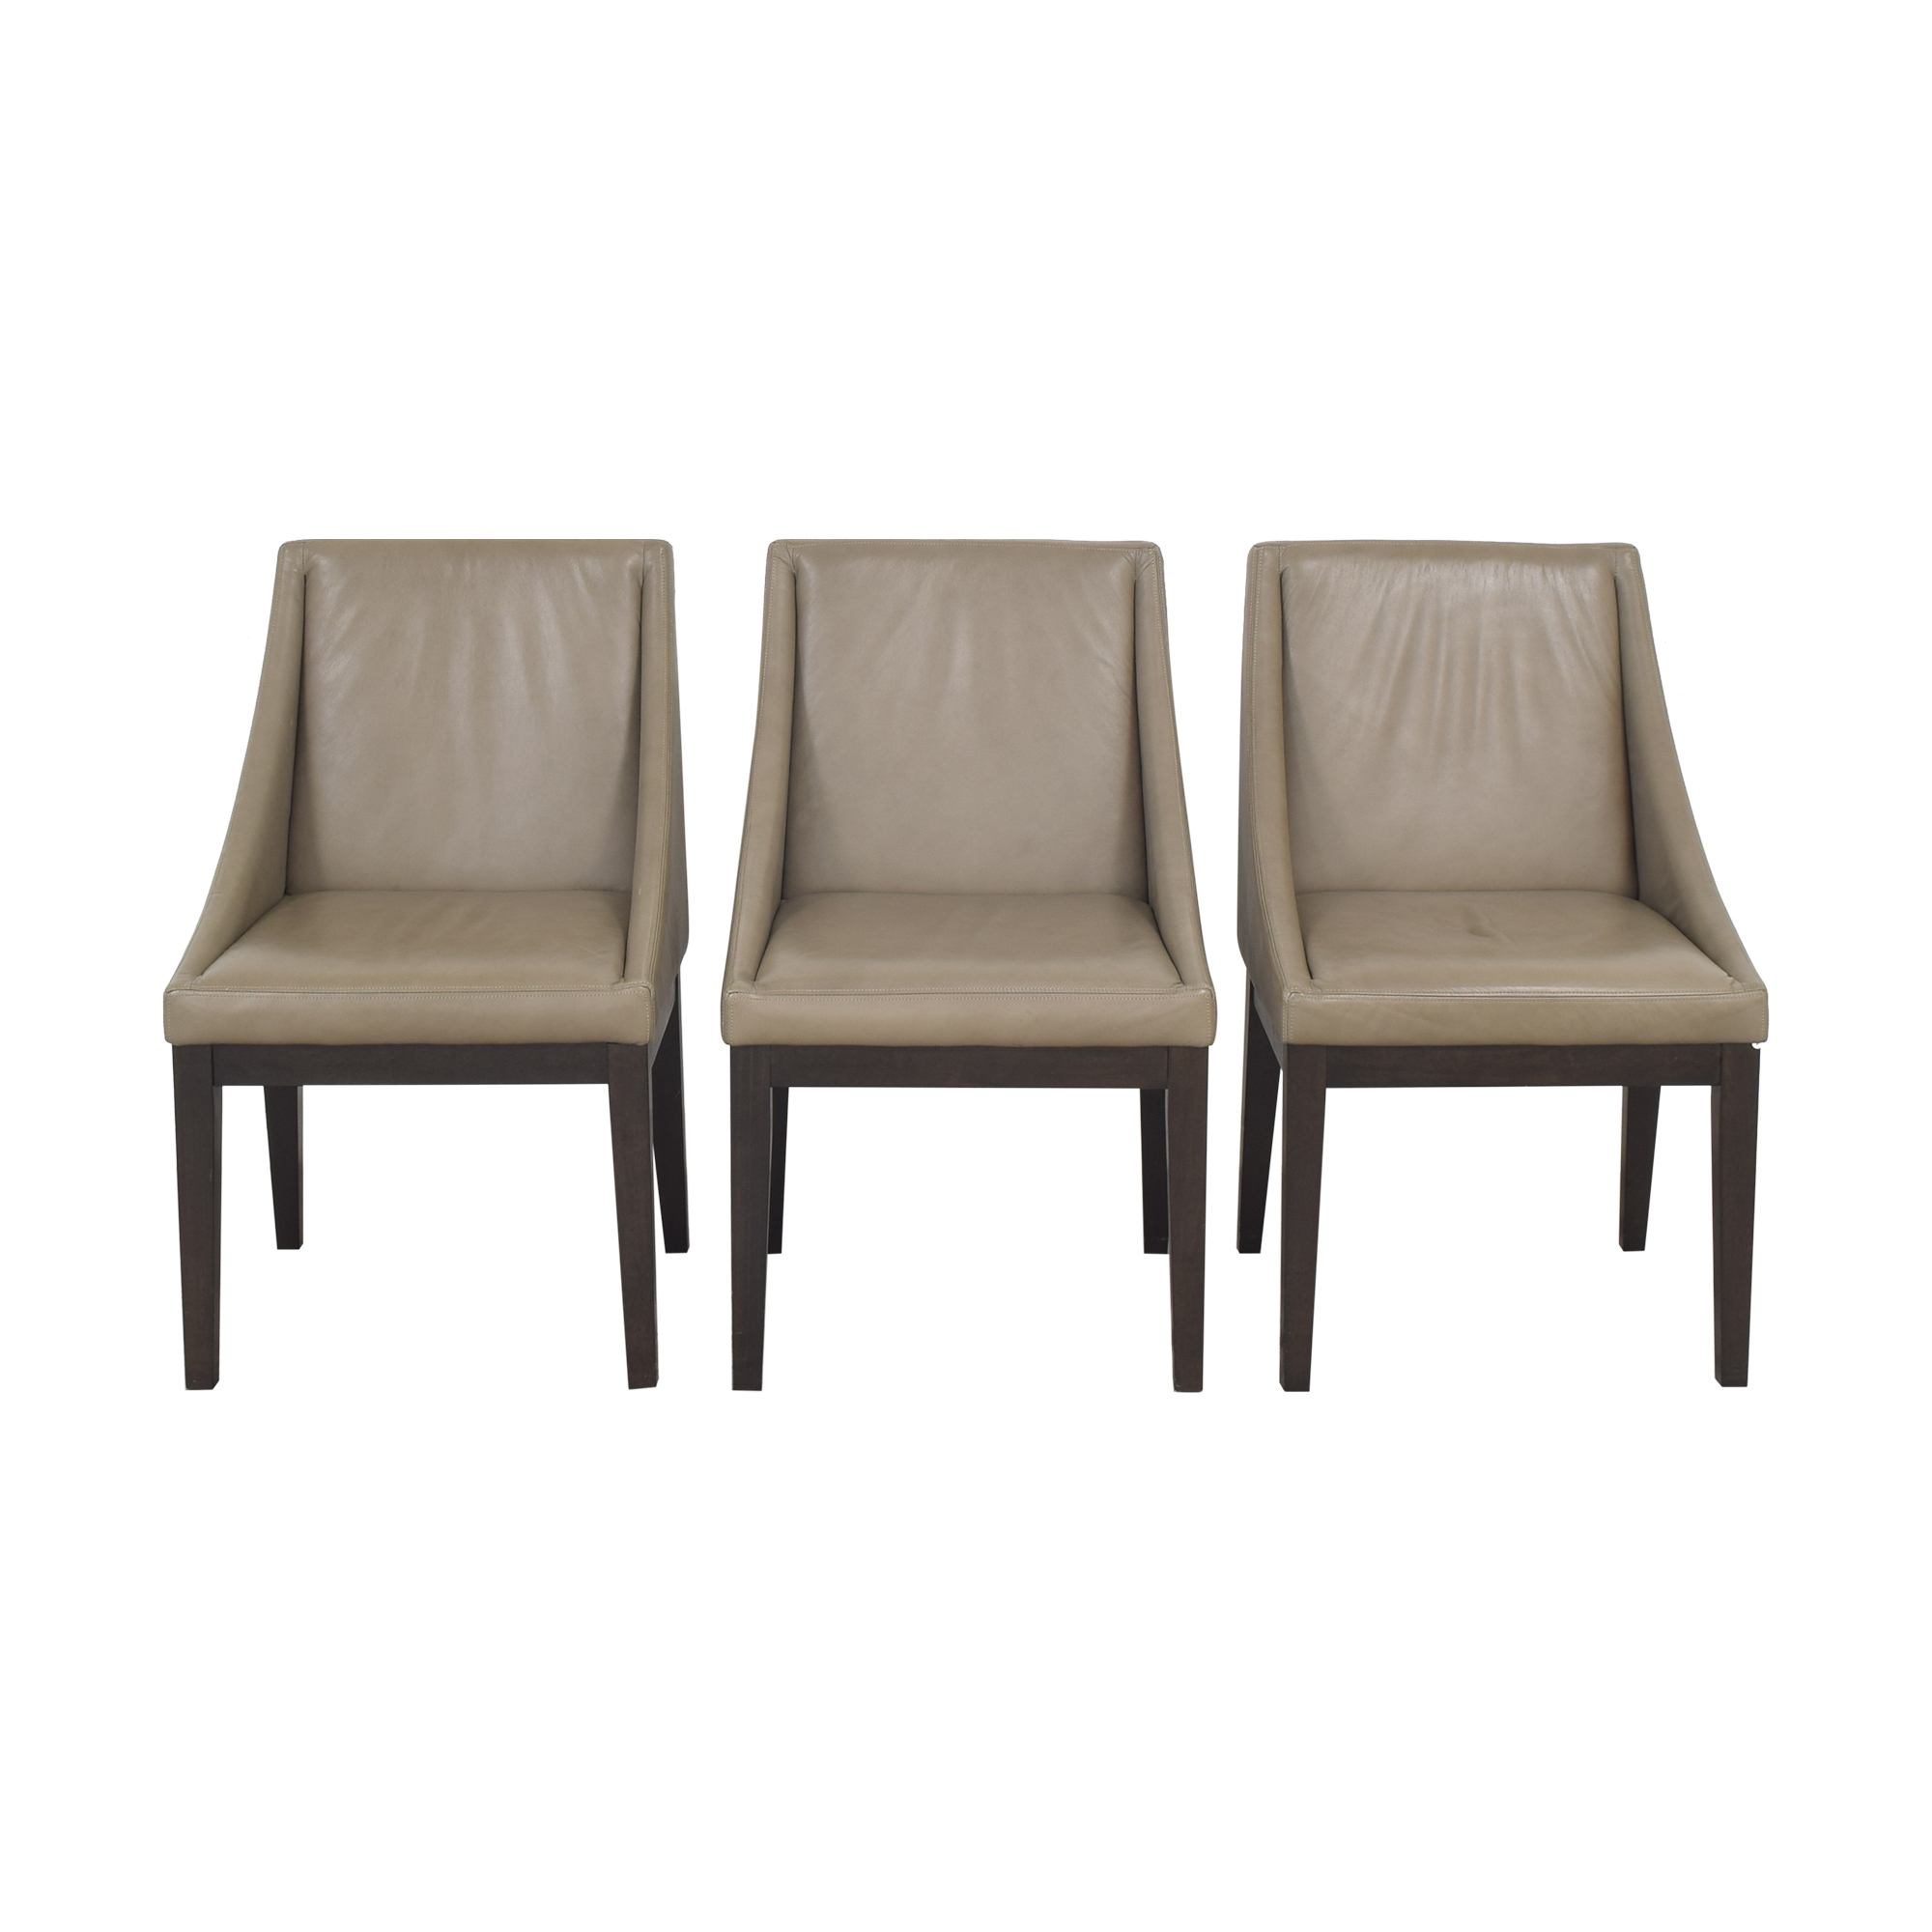 buy West Elm Curved Dining Chairs West Elm Dining Chairs